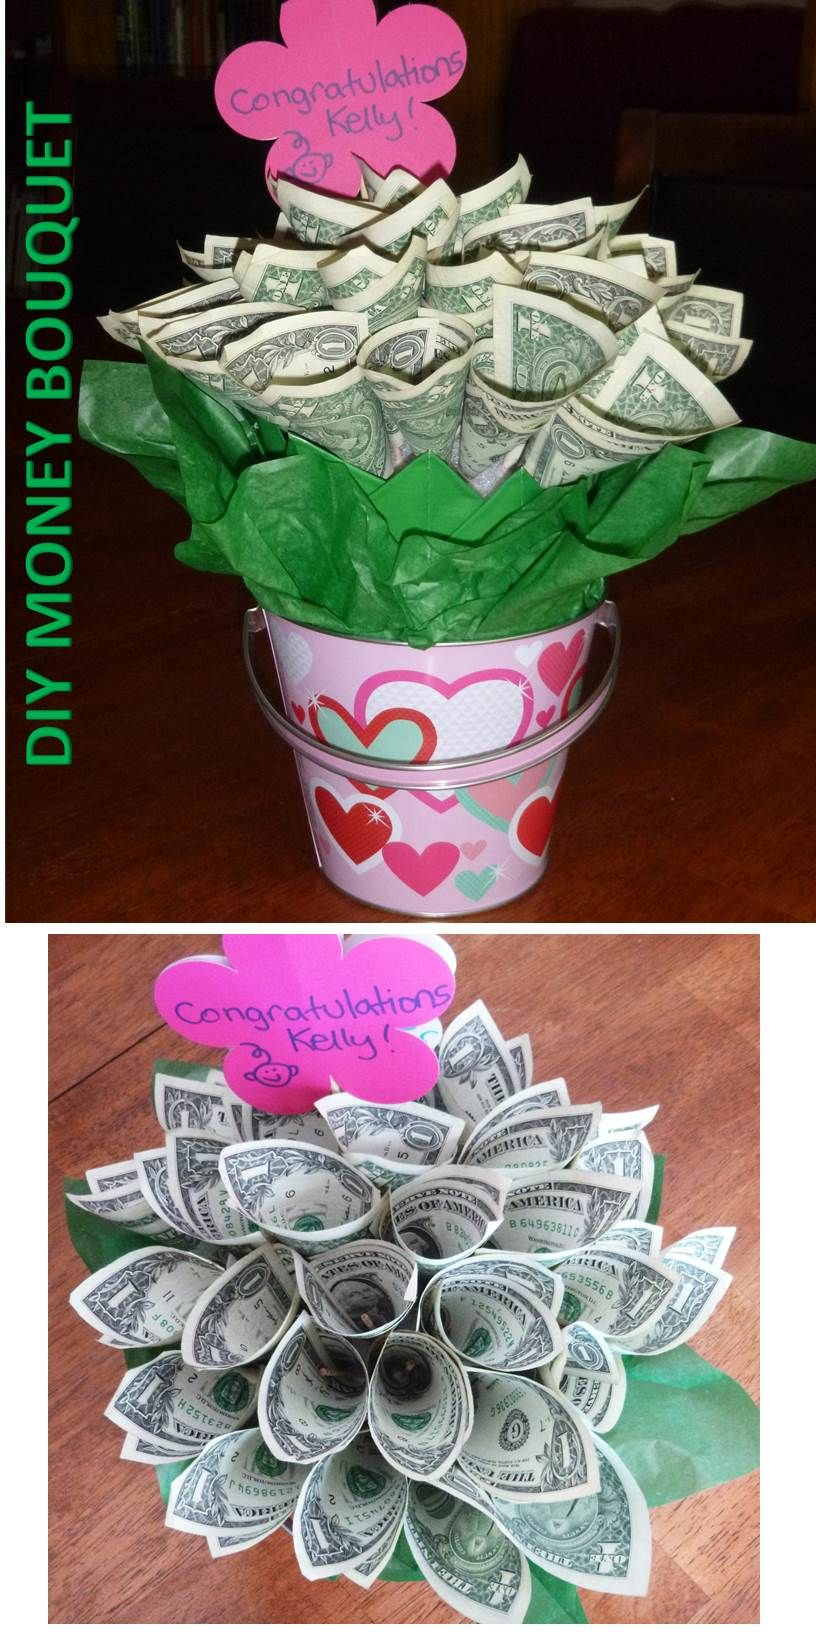 Diy money bouquet tissue paper bamboo skewers scotch tape 1 foam dd9d768746aa076233a9e3448ee66b1cg izmirmasajfo